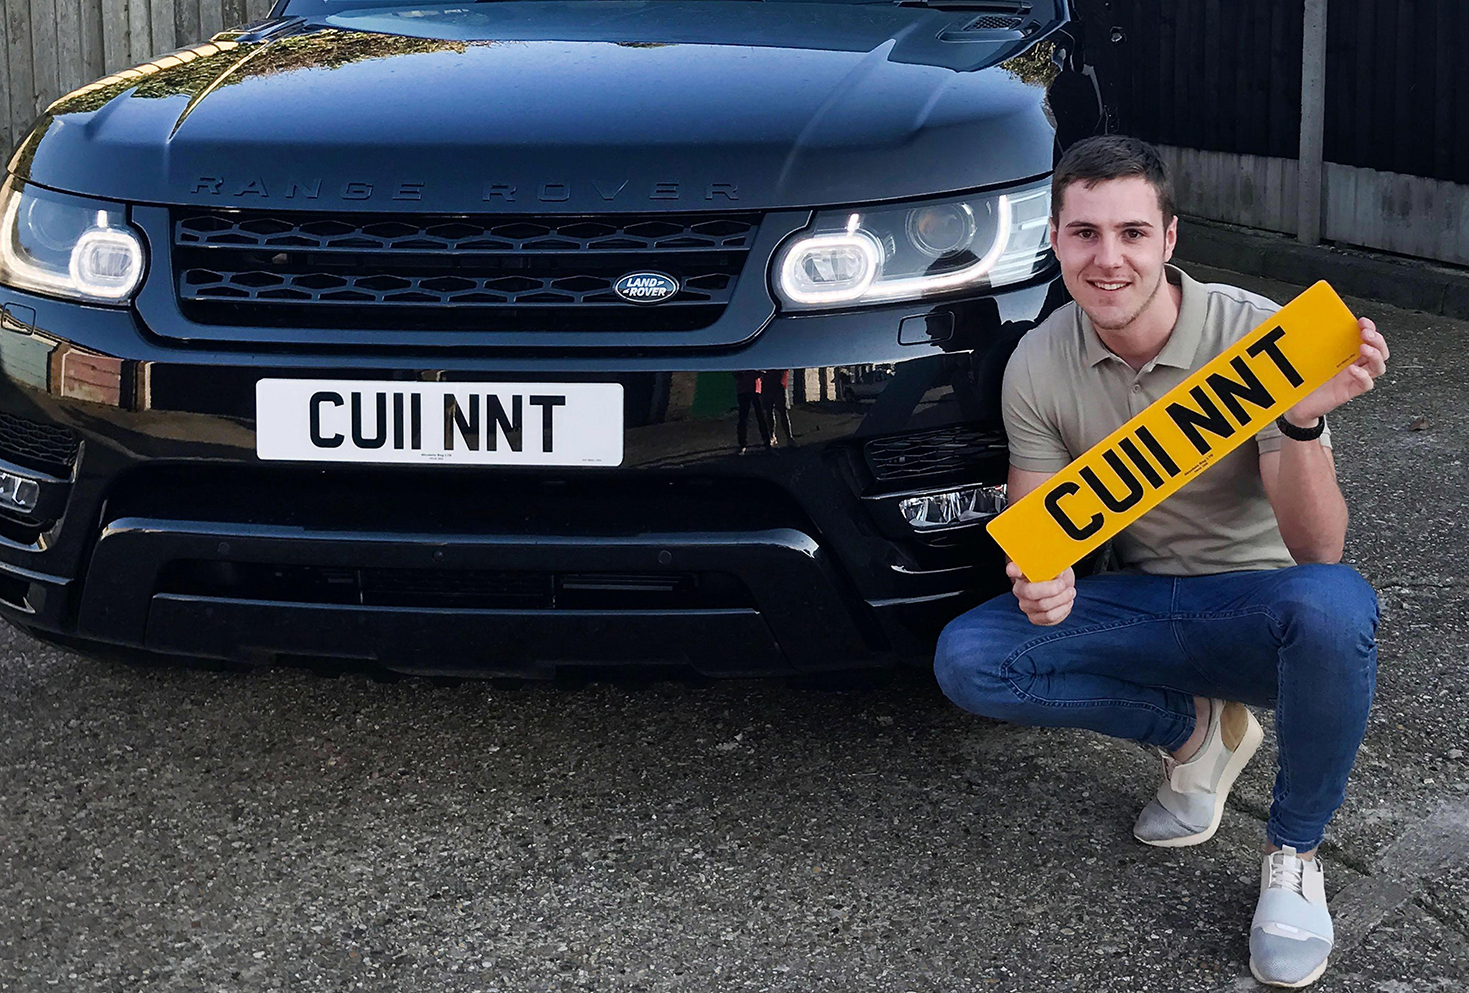 Giving Someone a Personalized Number Plate For Their Birthday